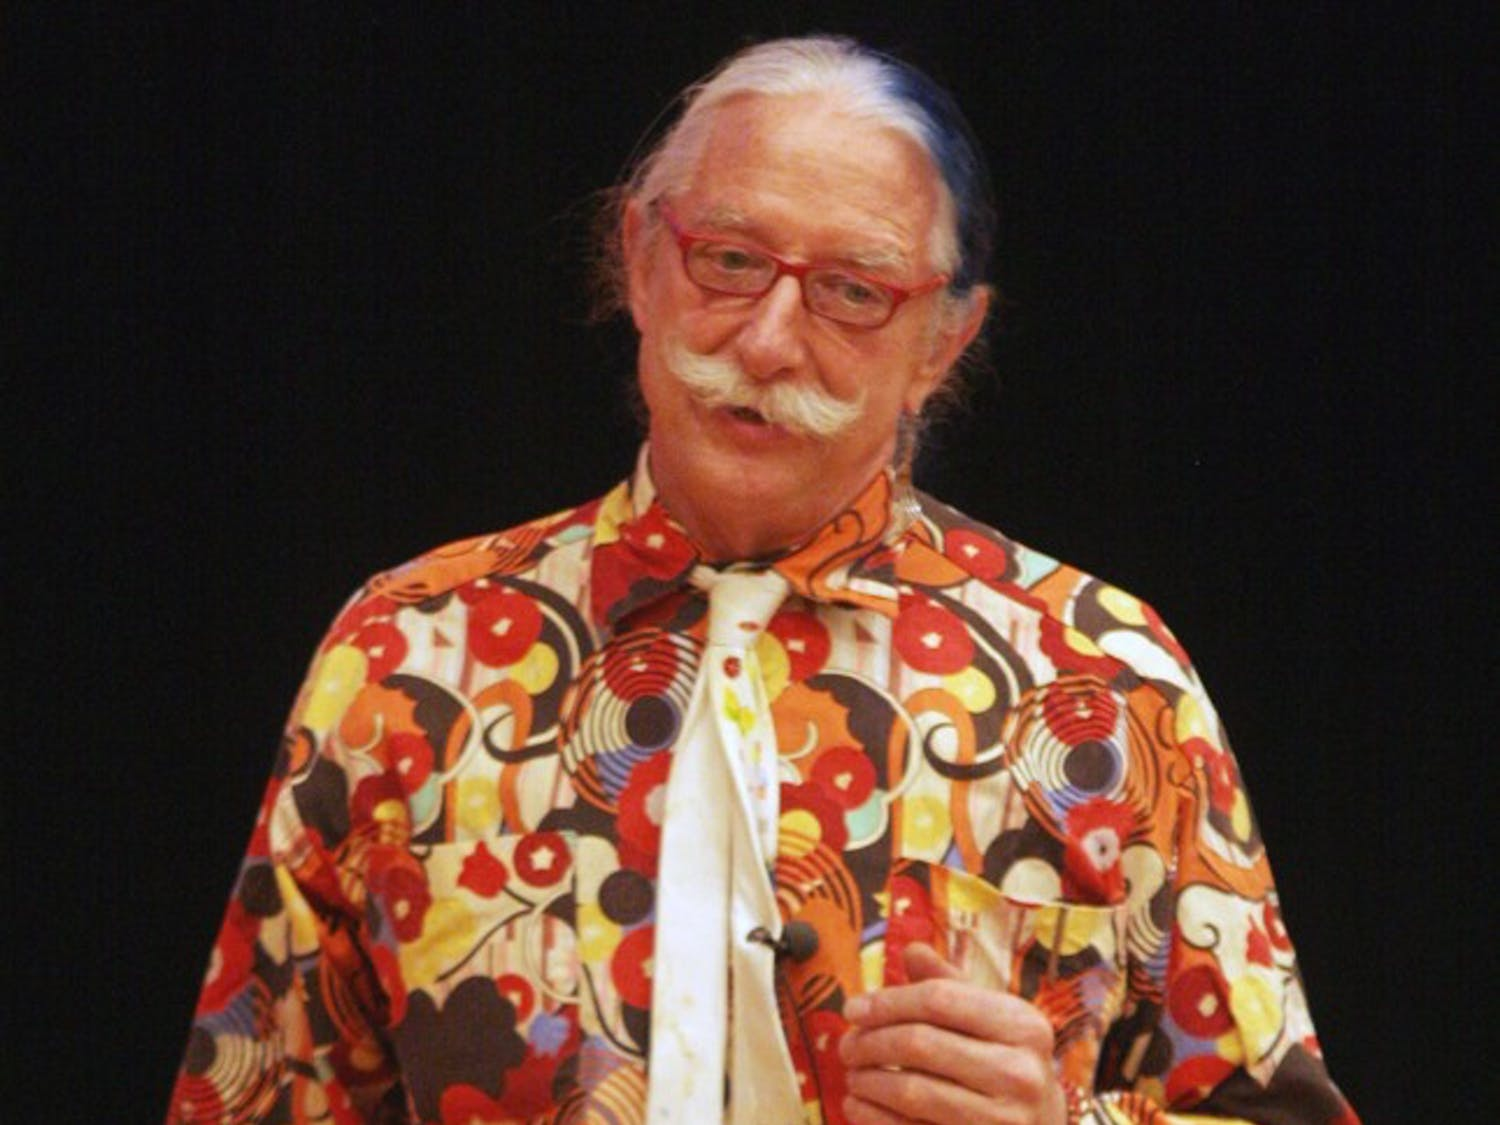 Patch Adams recites A Lemon by Pablo Neruda as he explains his his love strategy in the Great Hall Wednesday.